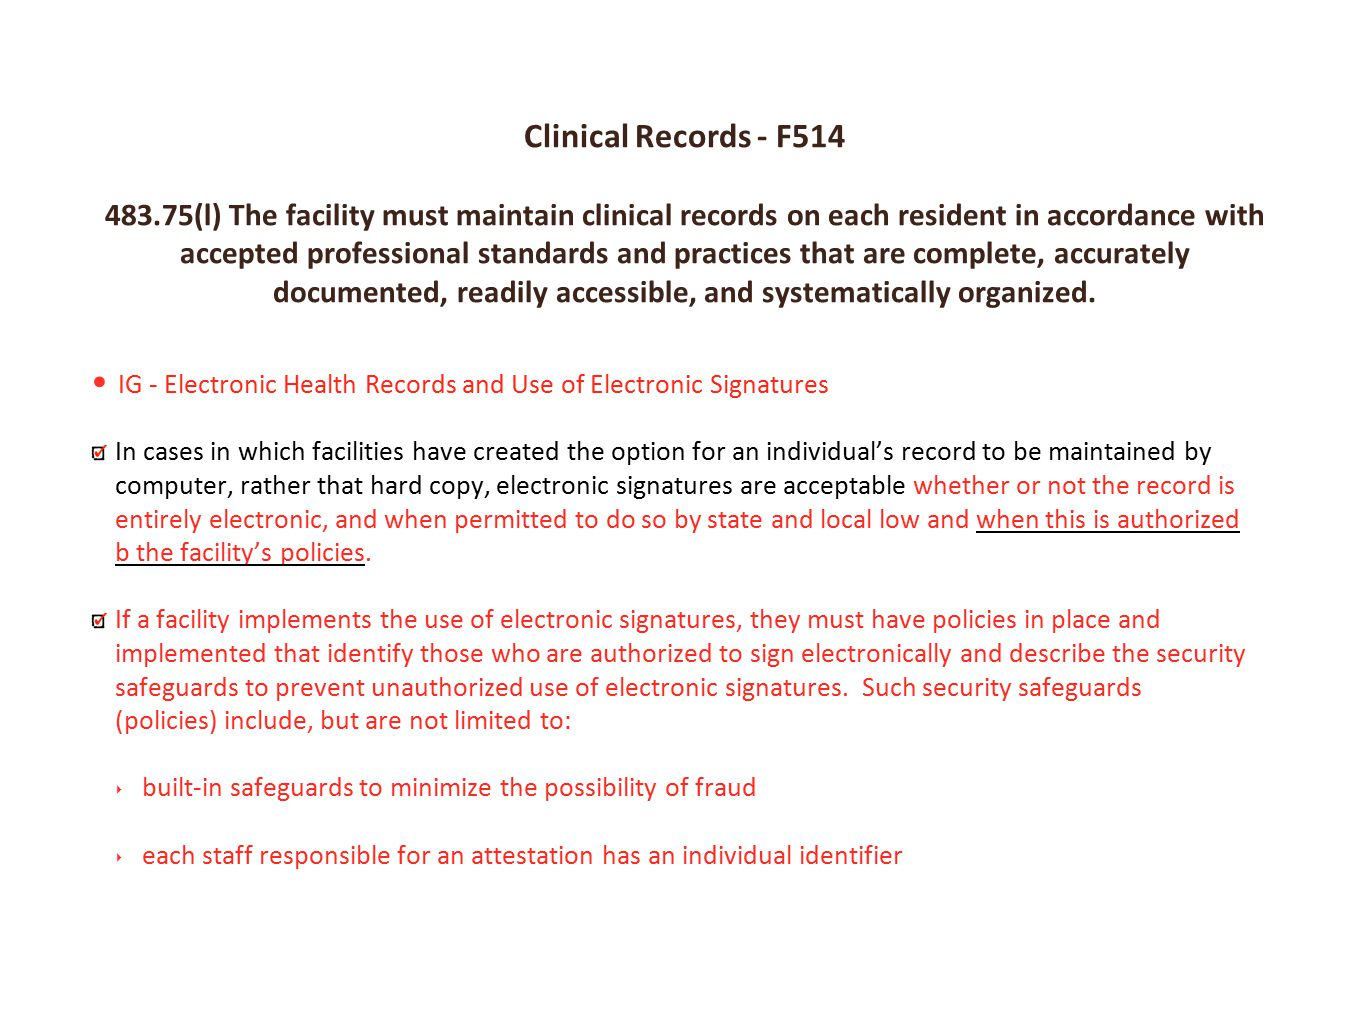 Clinical Records - F514 483.75(l) The facility must maintain clinical records on each resident in accordance with accepted professional standards and practices that are complete, accurately documented, readily accessible, and systematically organized.